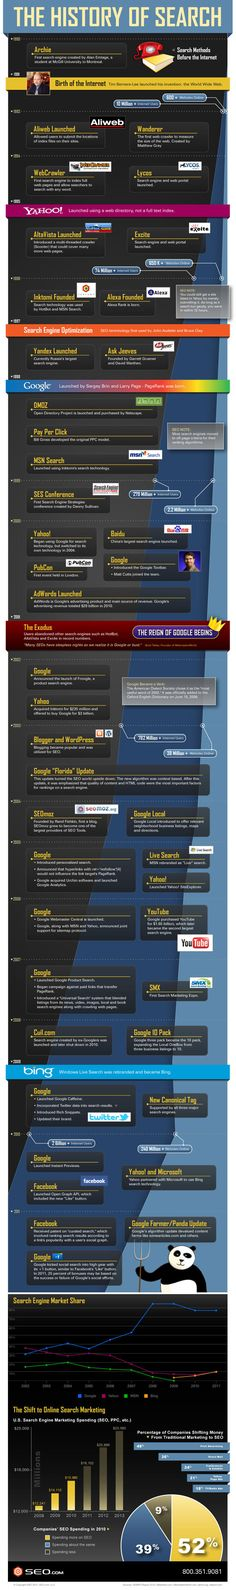 The History of Search #SEO